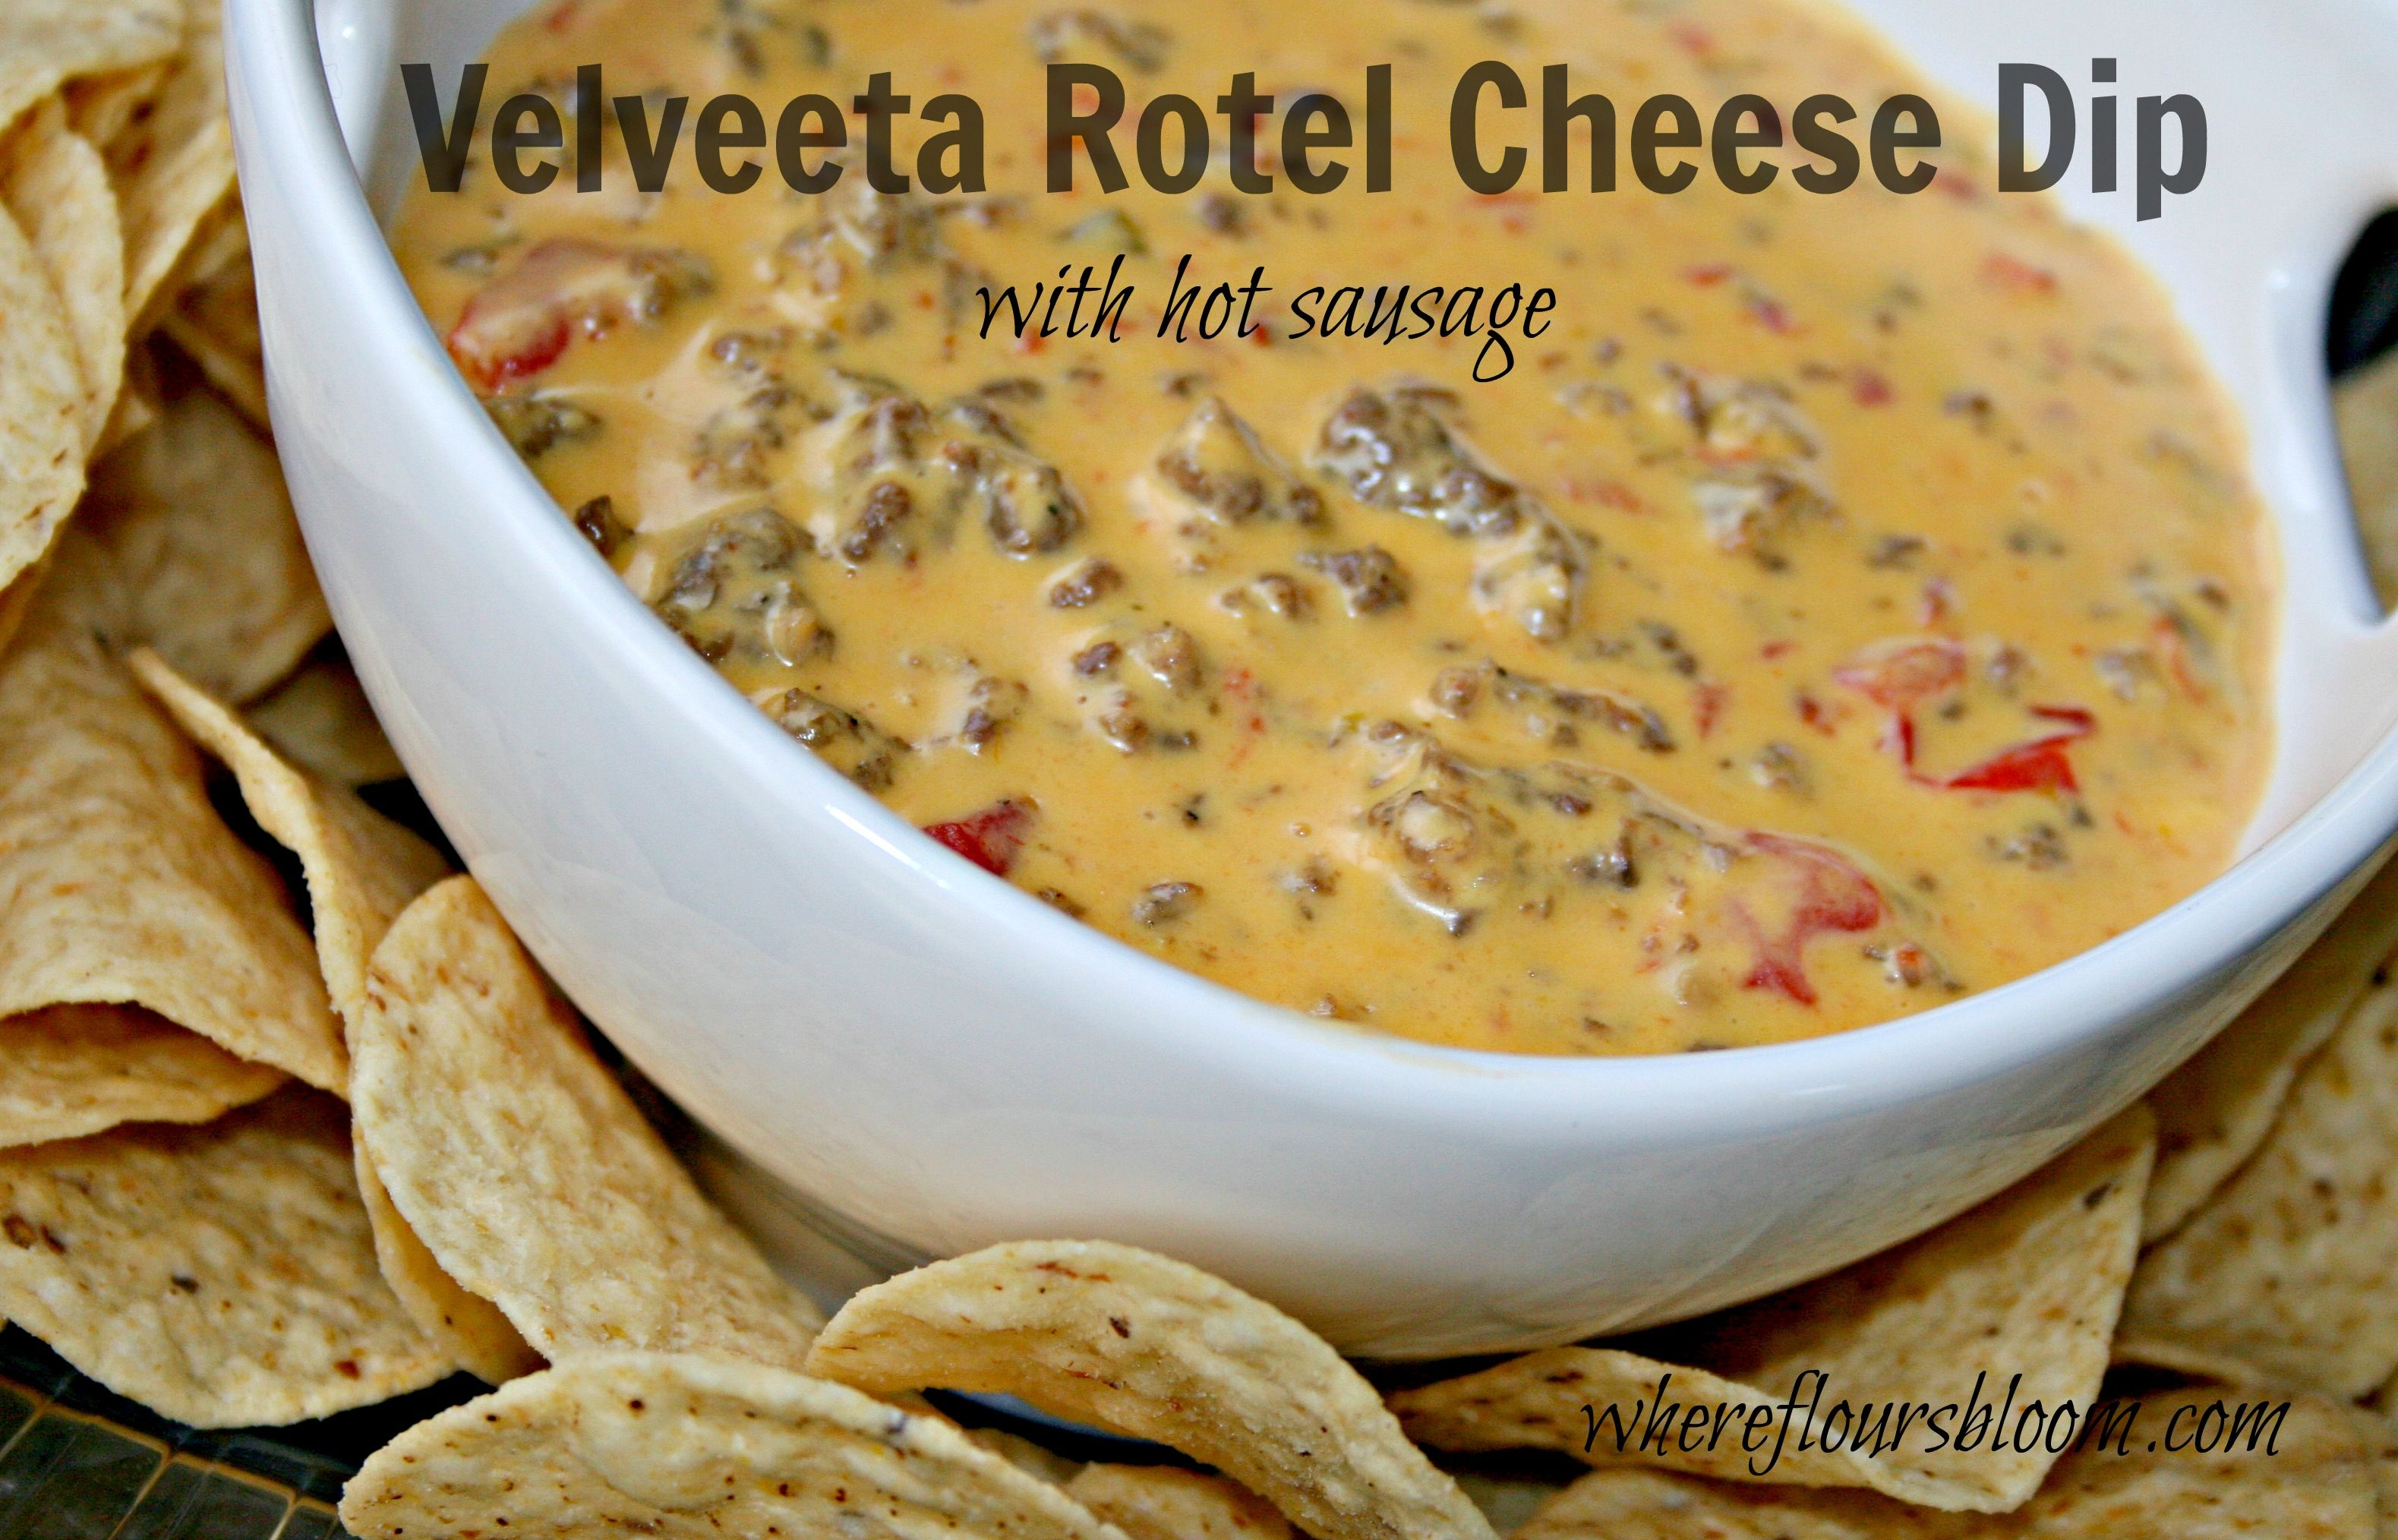 Great Simple Recipe Taste Delicious Having This Tonight With Our Super Bowl Party 1 Lb 16 Oz Velveeta Paste Rotel Cheese Dip Rotel Cheese Crock Pot Dips